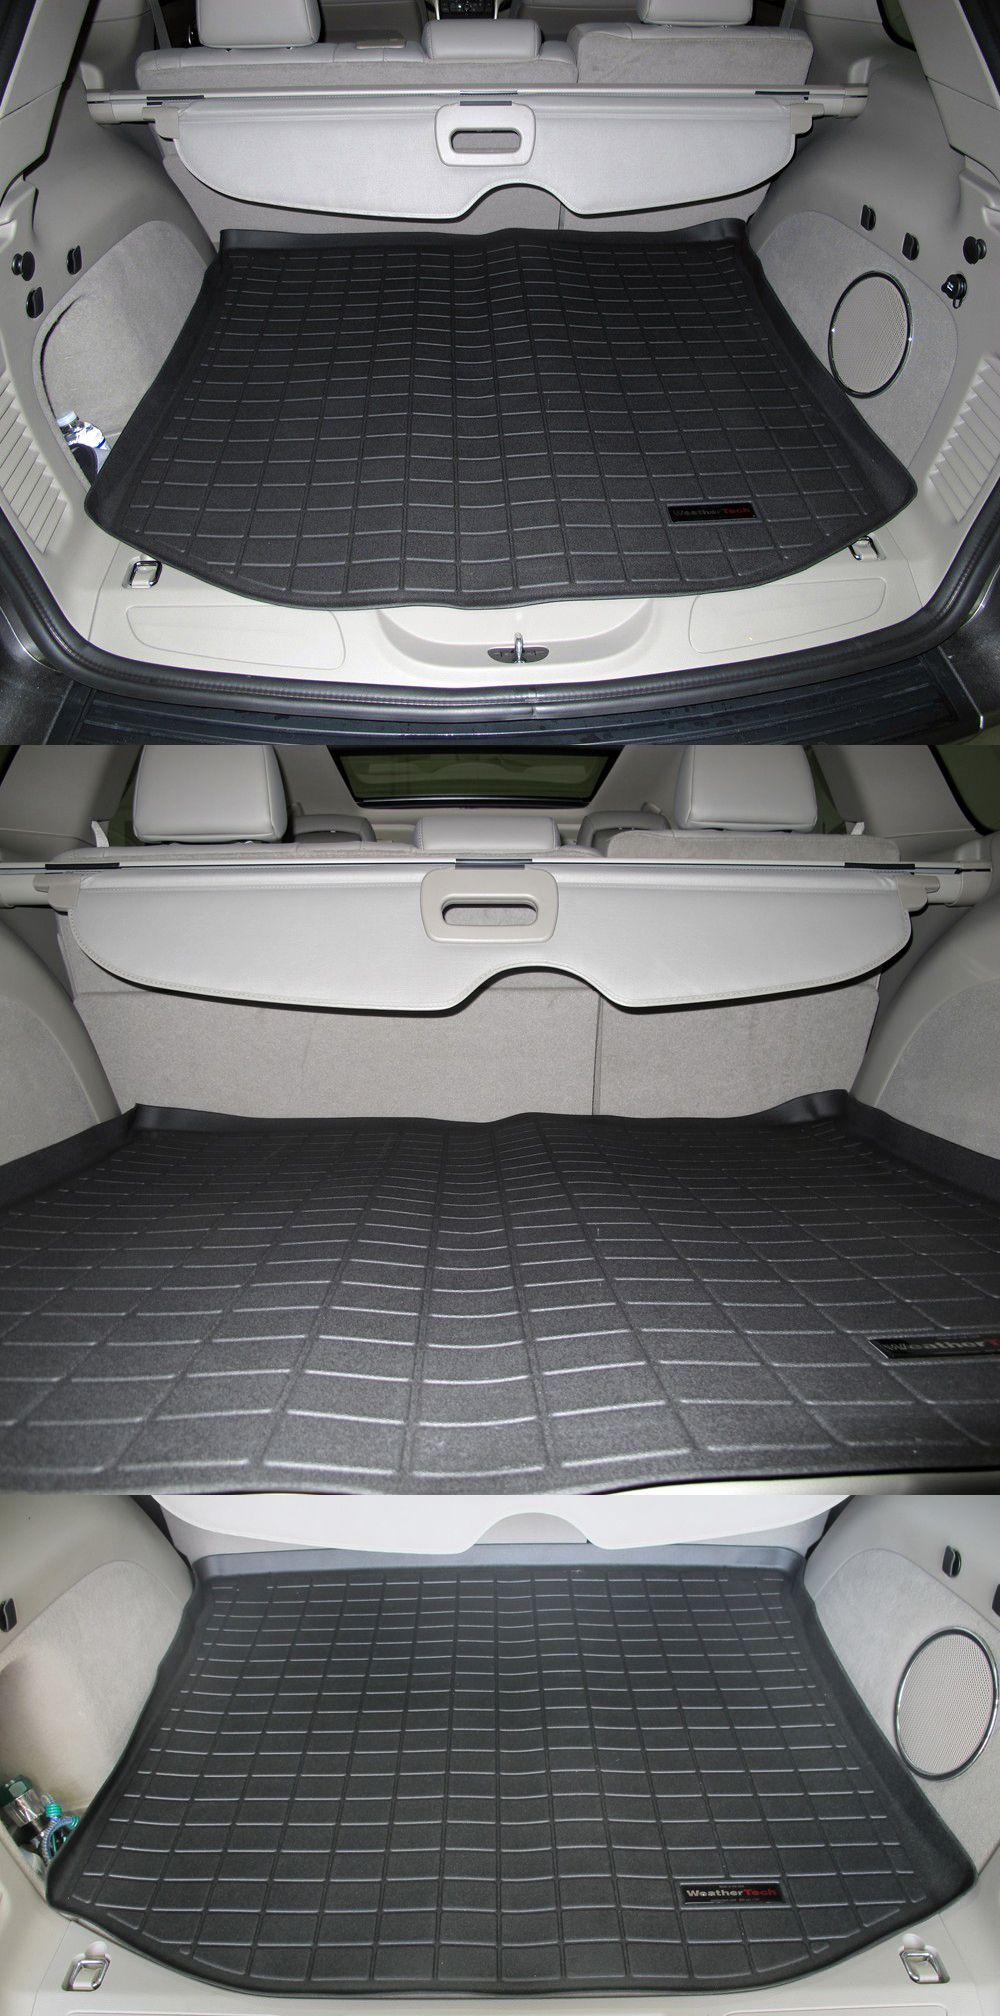 Weathertech mats for jeep grand cherokee - 2014 Jeep Grand Cherokee Floor Mats Weathertech